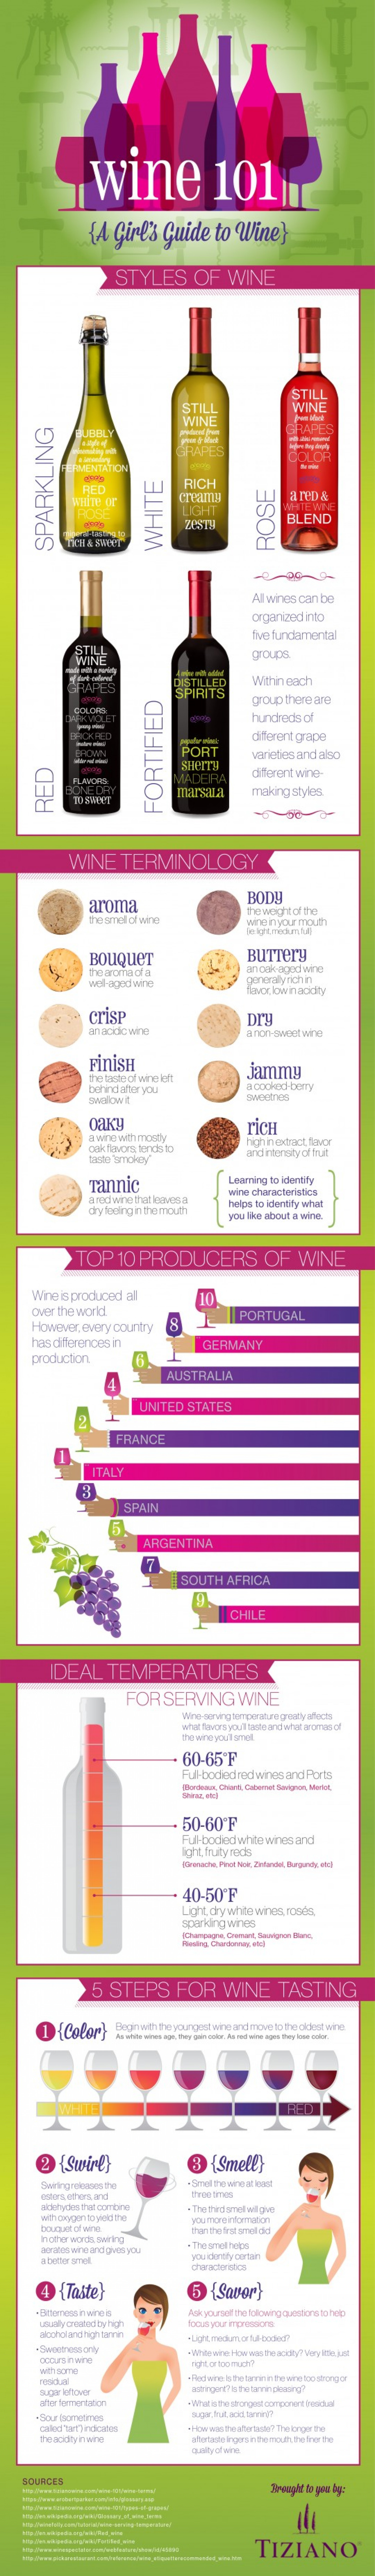 Wine 101 {A Girl's Guide to Wine} Infographic